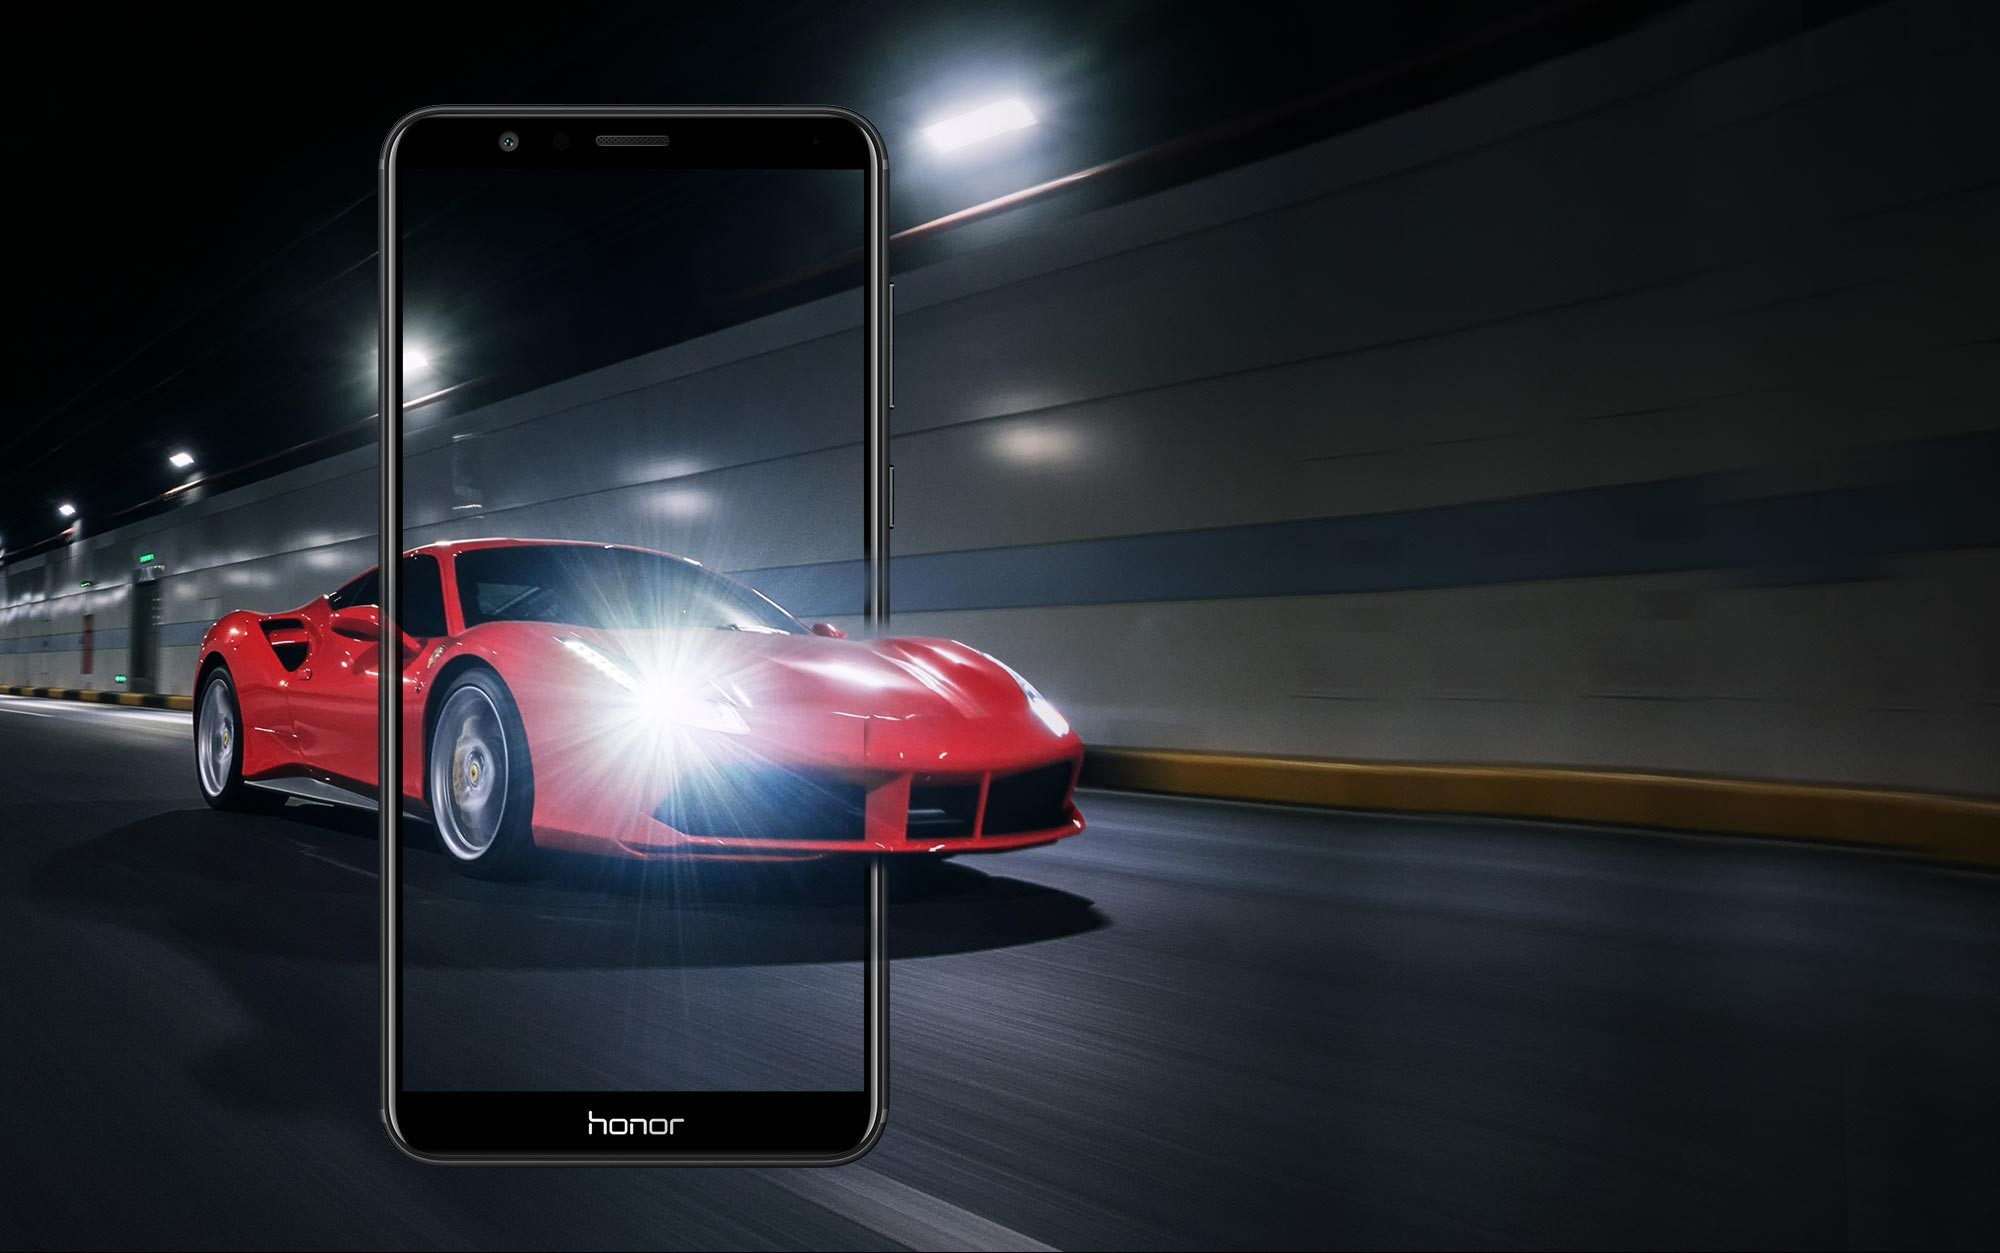 compare honor mobile phones – honor 7x faster cpu